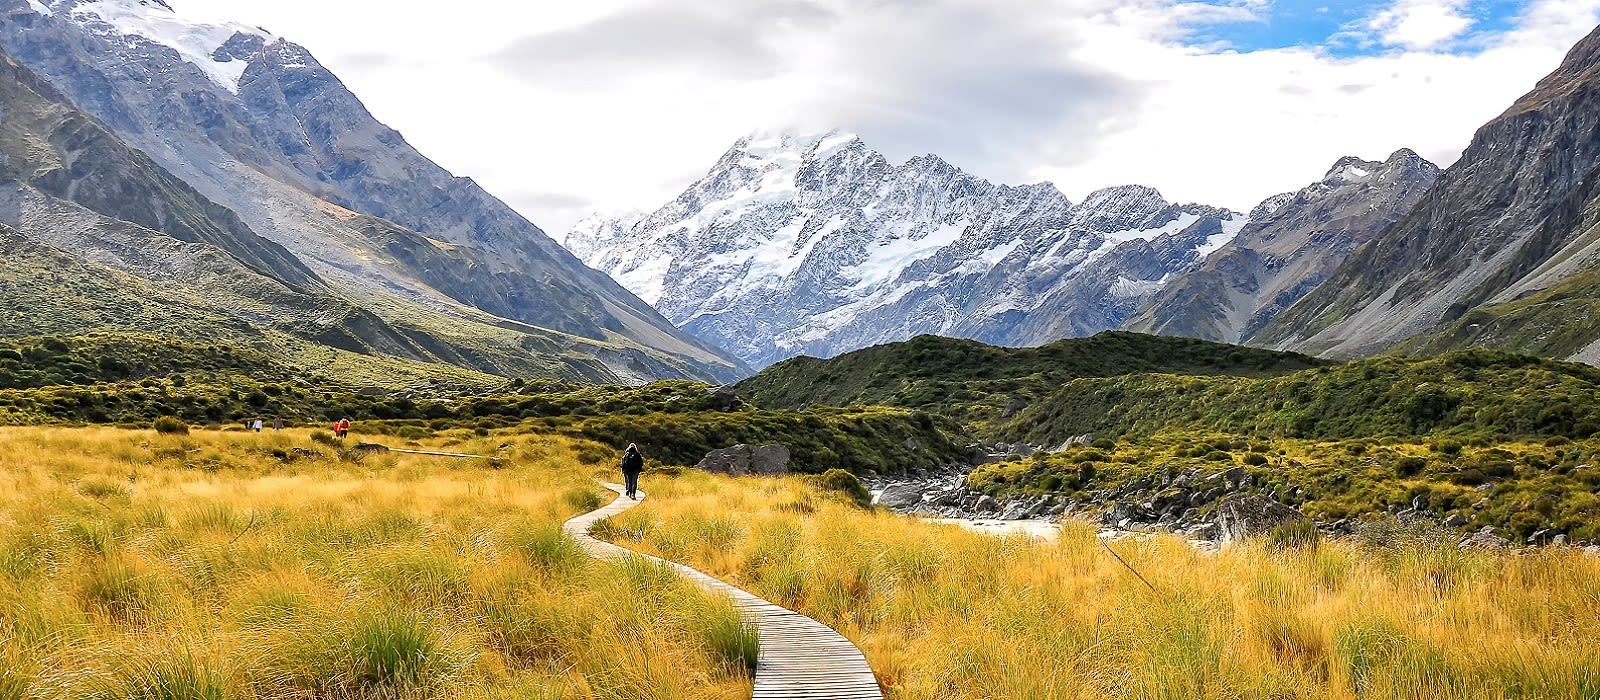 Essential New Zealand: Islands and Alpine Adventure Tour Trip 2